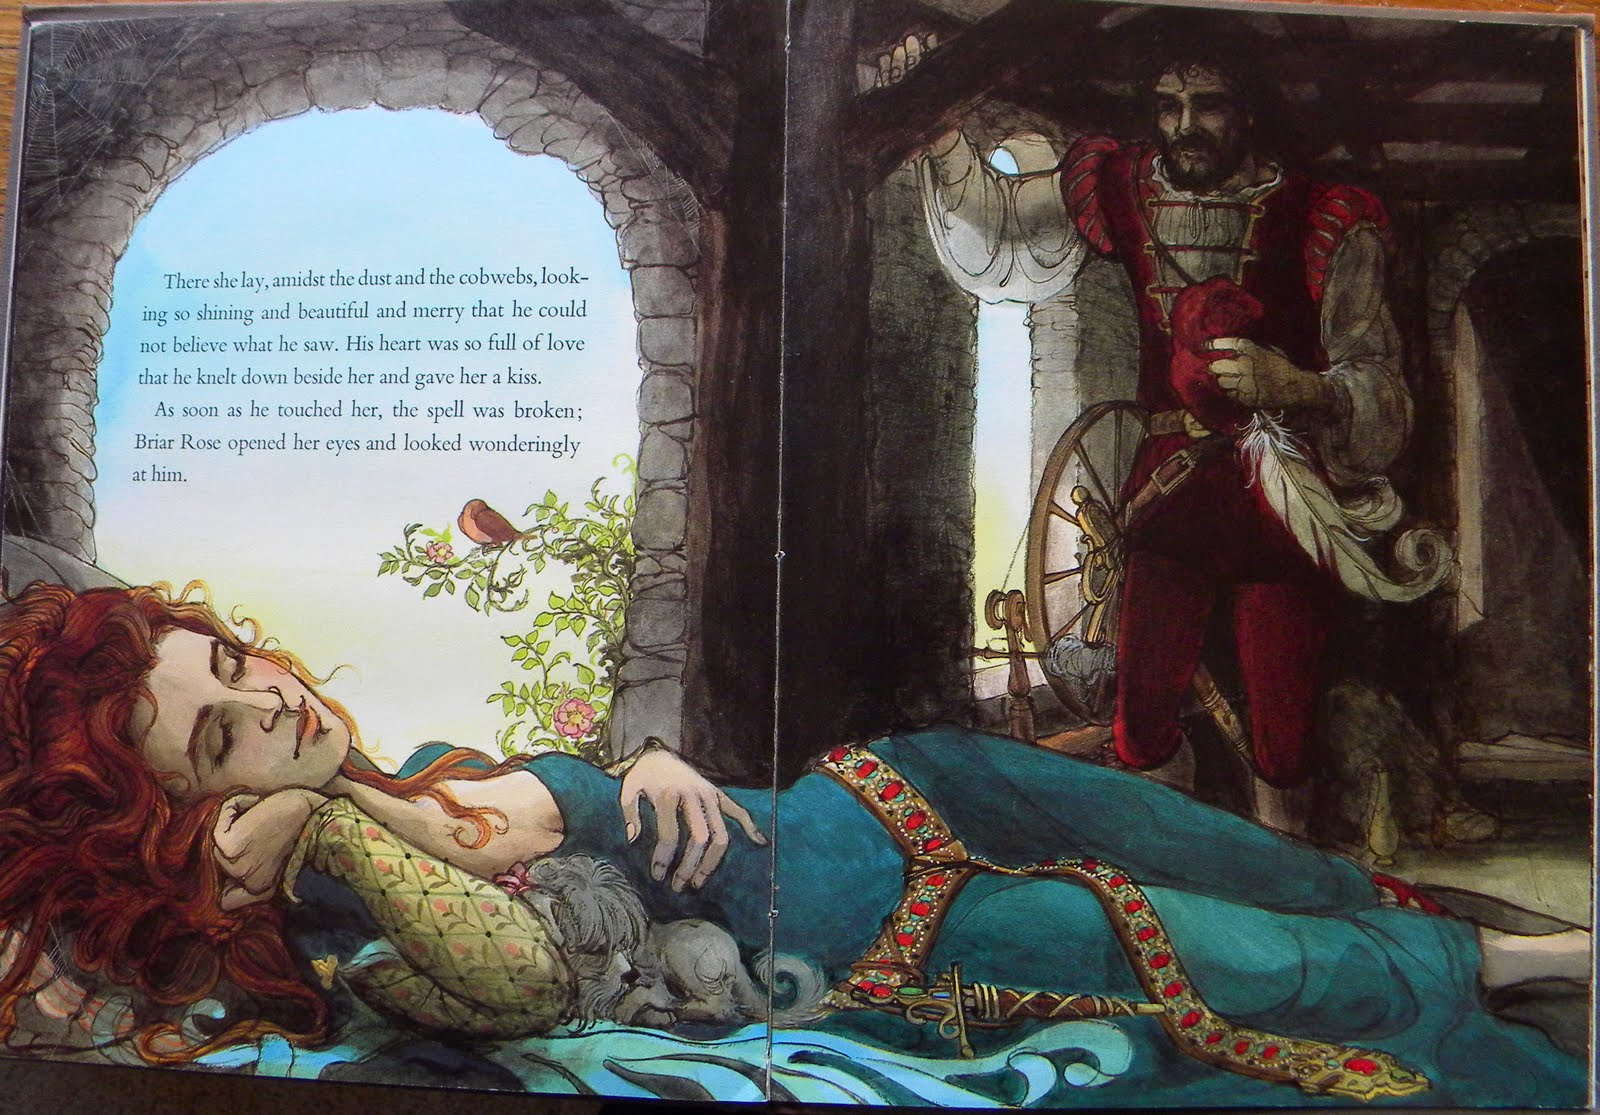 the classic sleeping beauty in jane yolens story of briar rose Best answer: briar rose by jane yolen is a heart-wrenching story of sleeping beauty intertwined with the horrors of world war ii the novel contains all the.